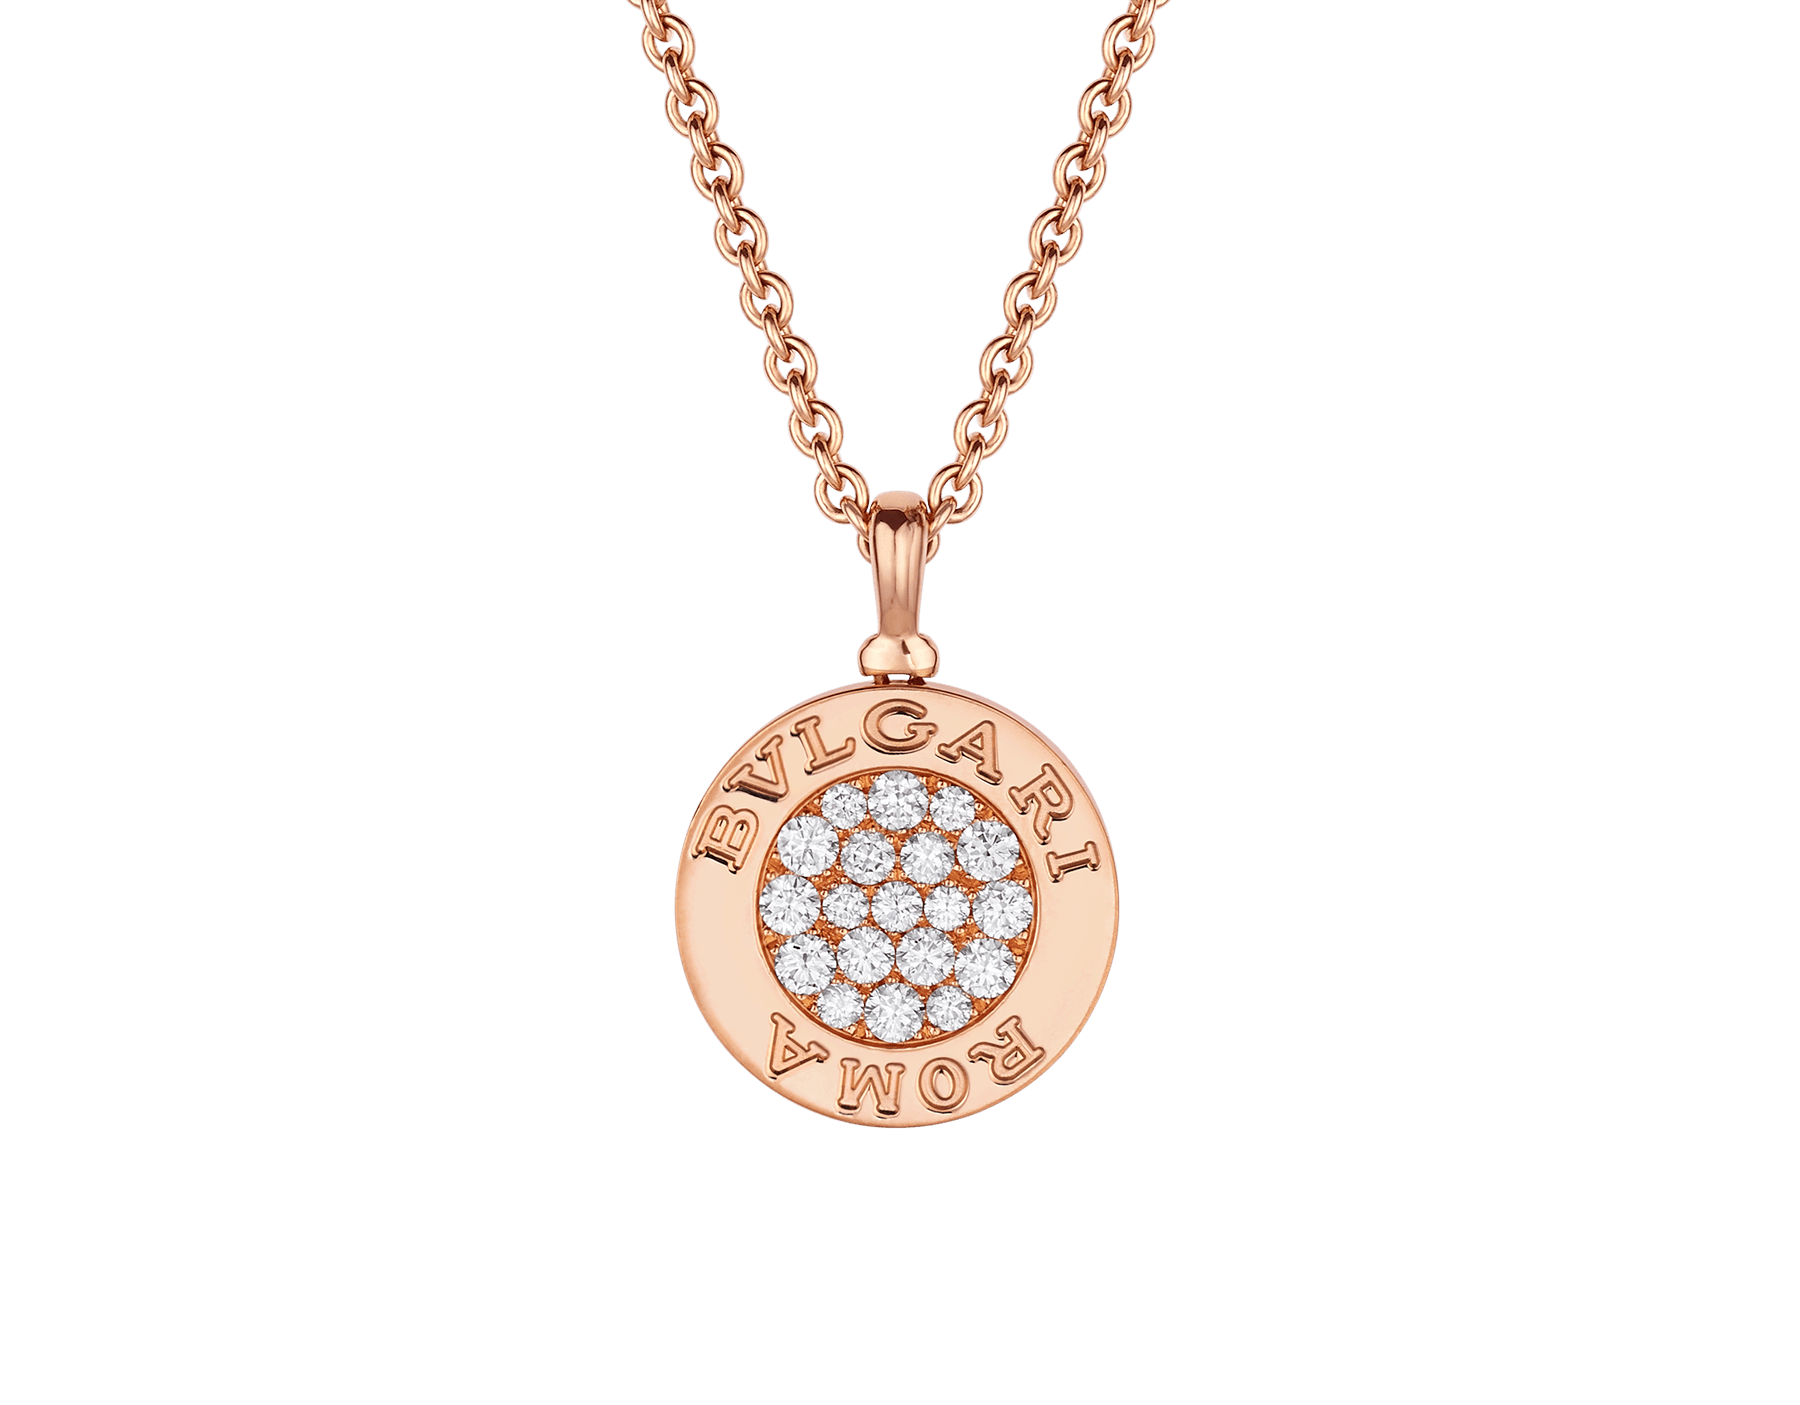 BVLGARI BVLGARI 18 kt rose gold chain and 18 kt rose gold pendant set with mother-of-pearl insert and pavé diamonds (0.34 ct) 358375 image 1